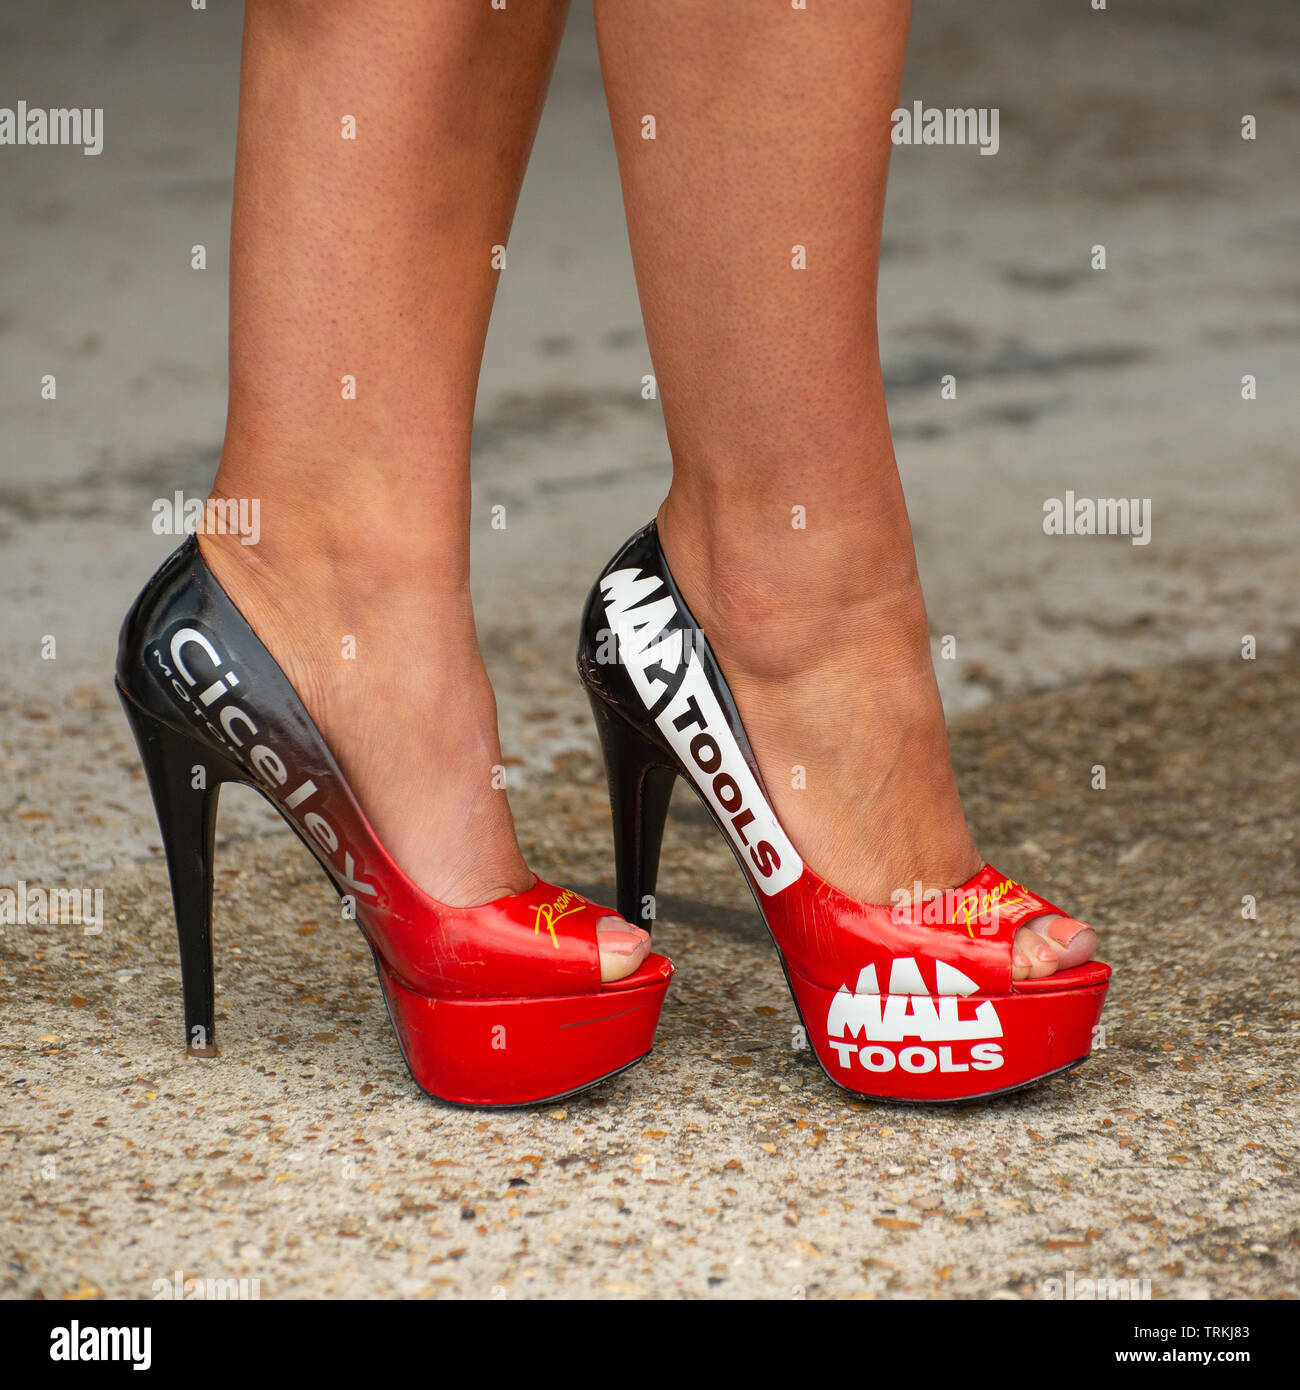 Ladies Legs in a Pair of Red and Black High Heel Shoes Advertising Mac Tools and Ciceley Motorsport - Stock Image